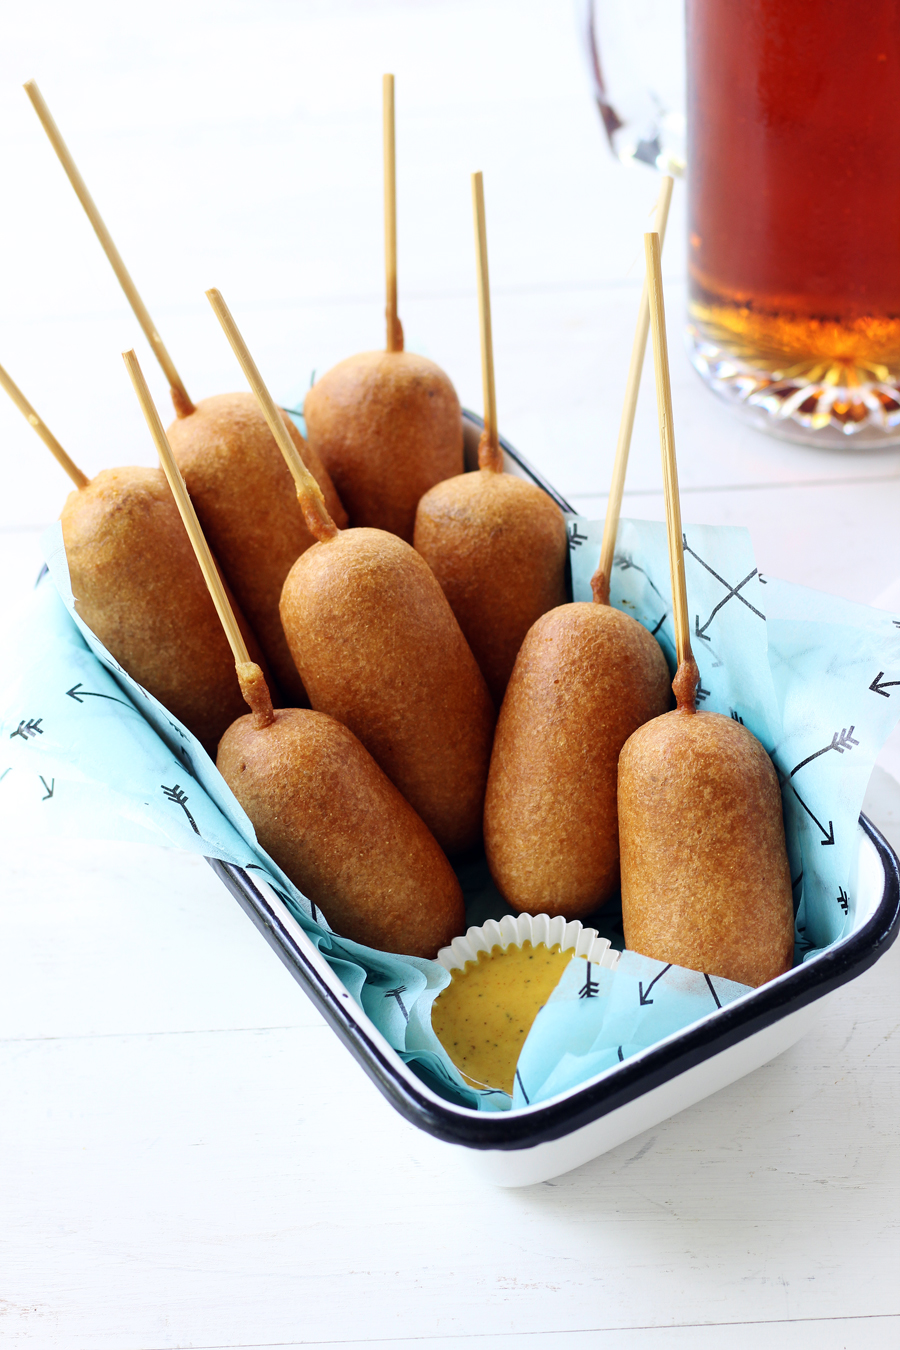 Indulge your summer food cravings with these delicious Beer Battered Bratwurst Corn Dogs!  This recipe features savory bratwurst sausages dipped in a golden, homemade beer batter then deep-fried to perfection.  #corndogs #bratwurst